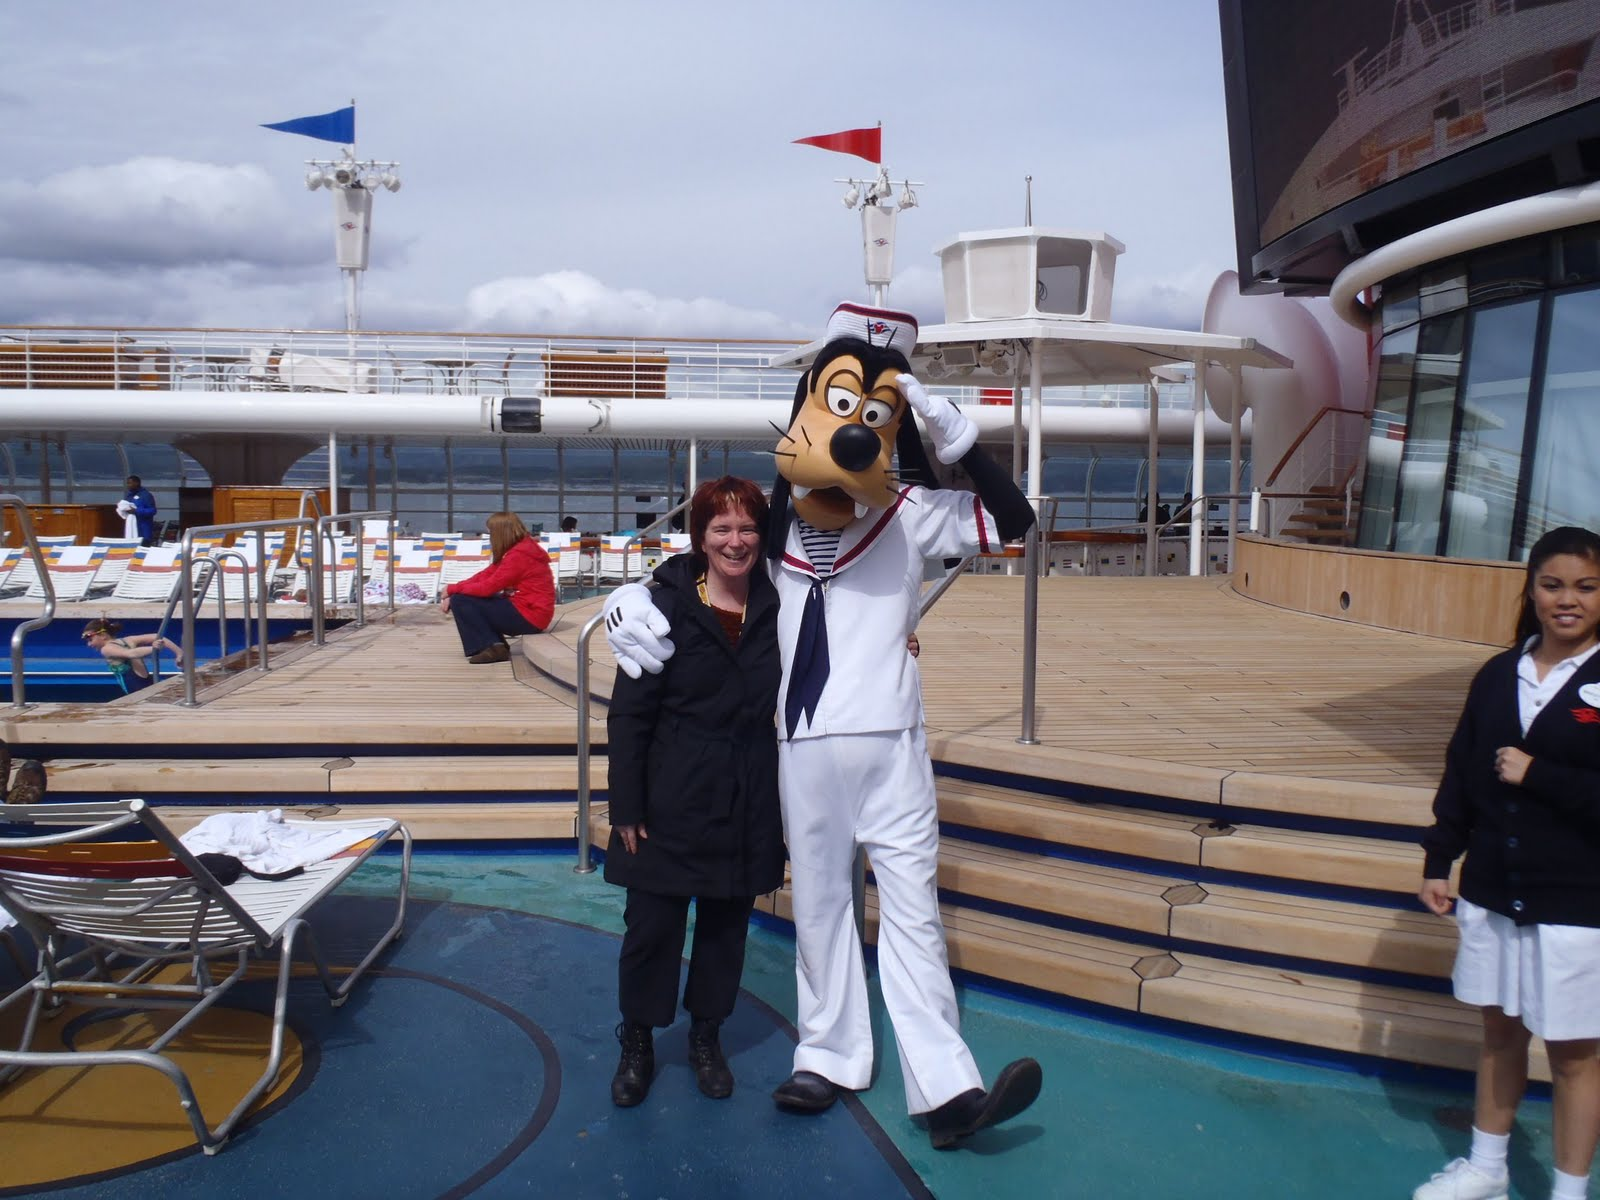 Baublicious: Cruising The Inside Passage With The Disney